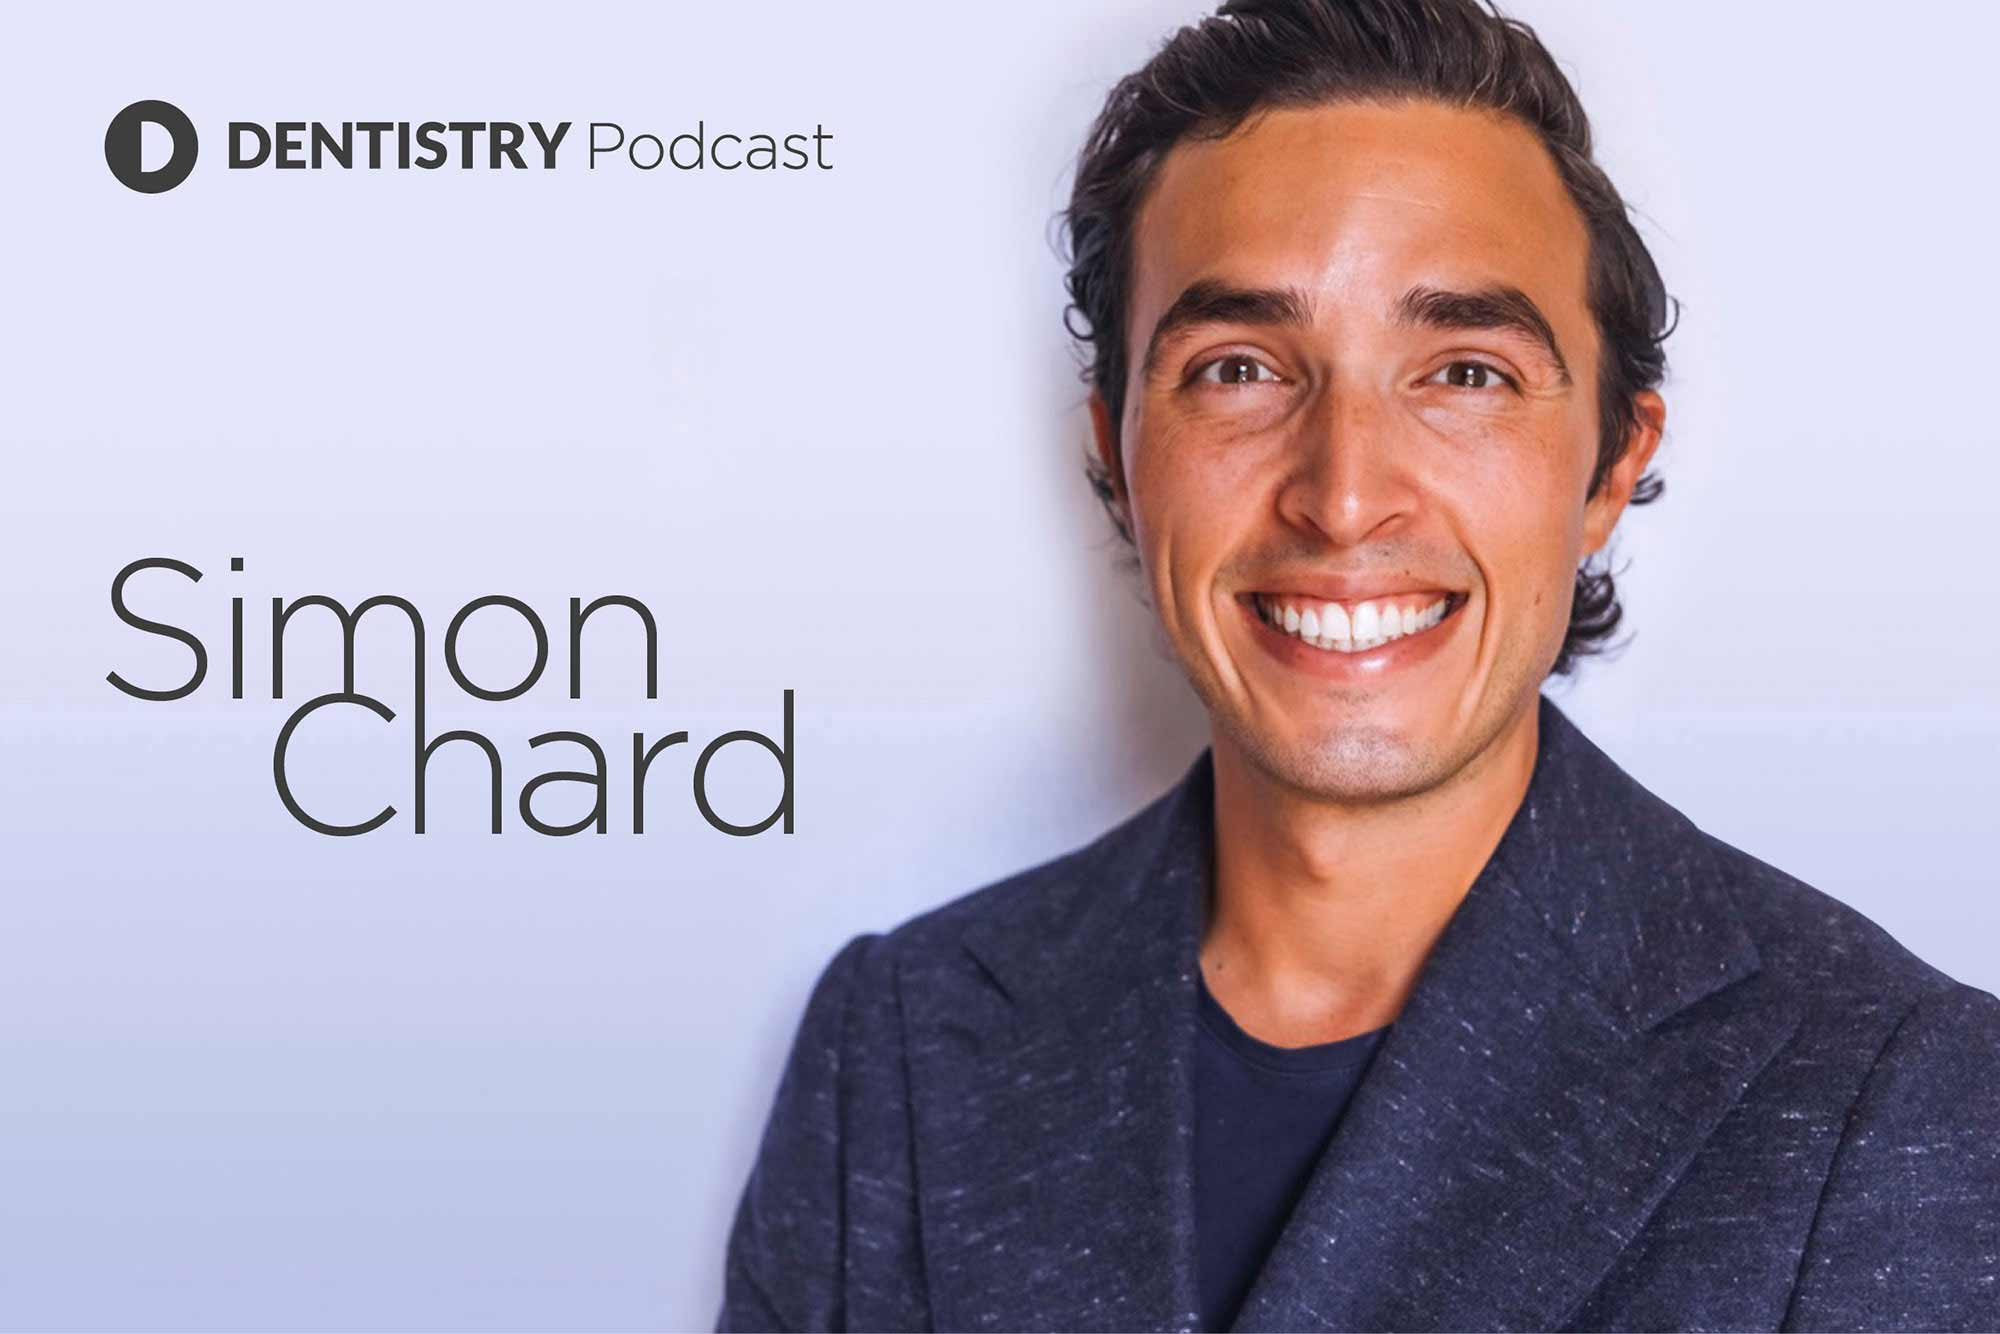 This week we welcome Dr Simon Chard, who discusses sustainable dentistry and how the pandemic will shape the future of the profession